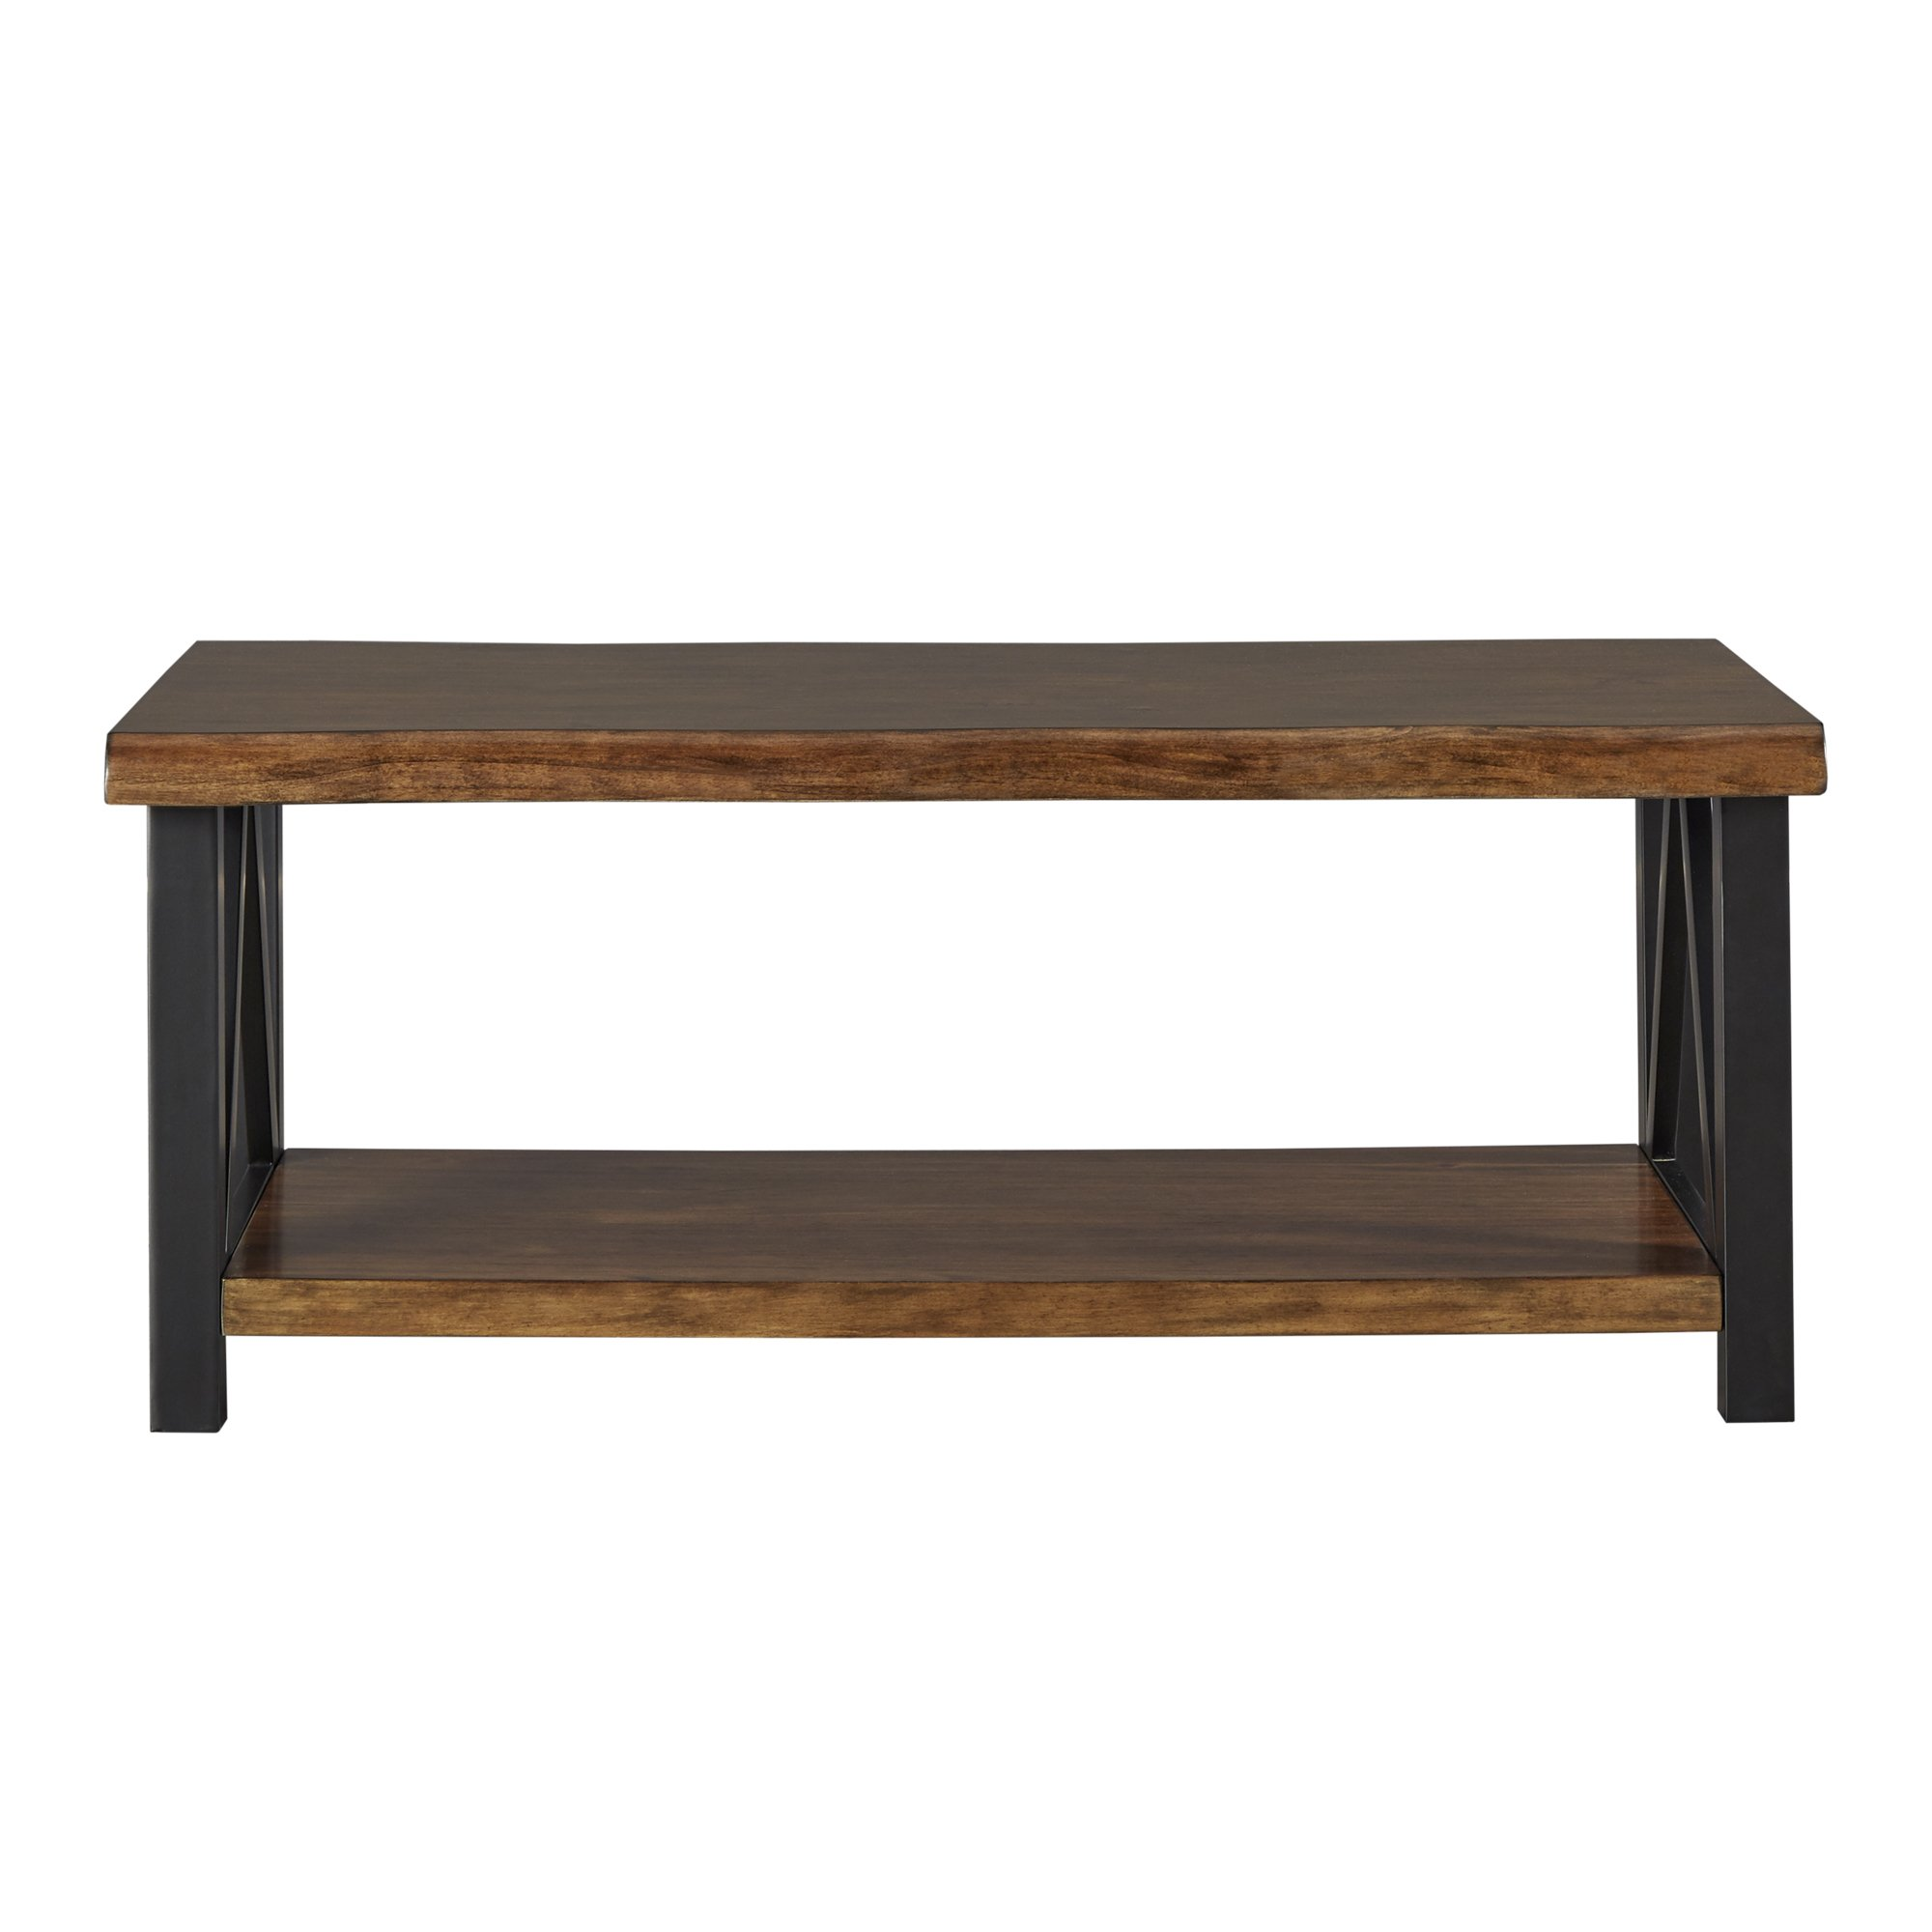 banyan live edge wood and metal accent tables inspire artisan table with shelf free shipping today distressed trestle pin legs low for living room corner chest cherry coffee set